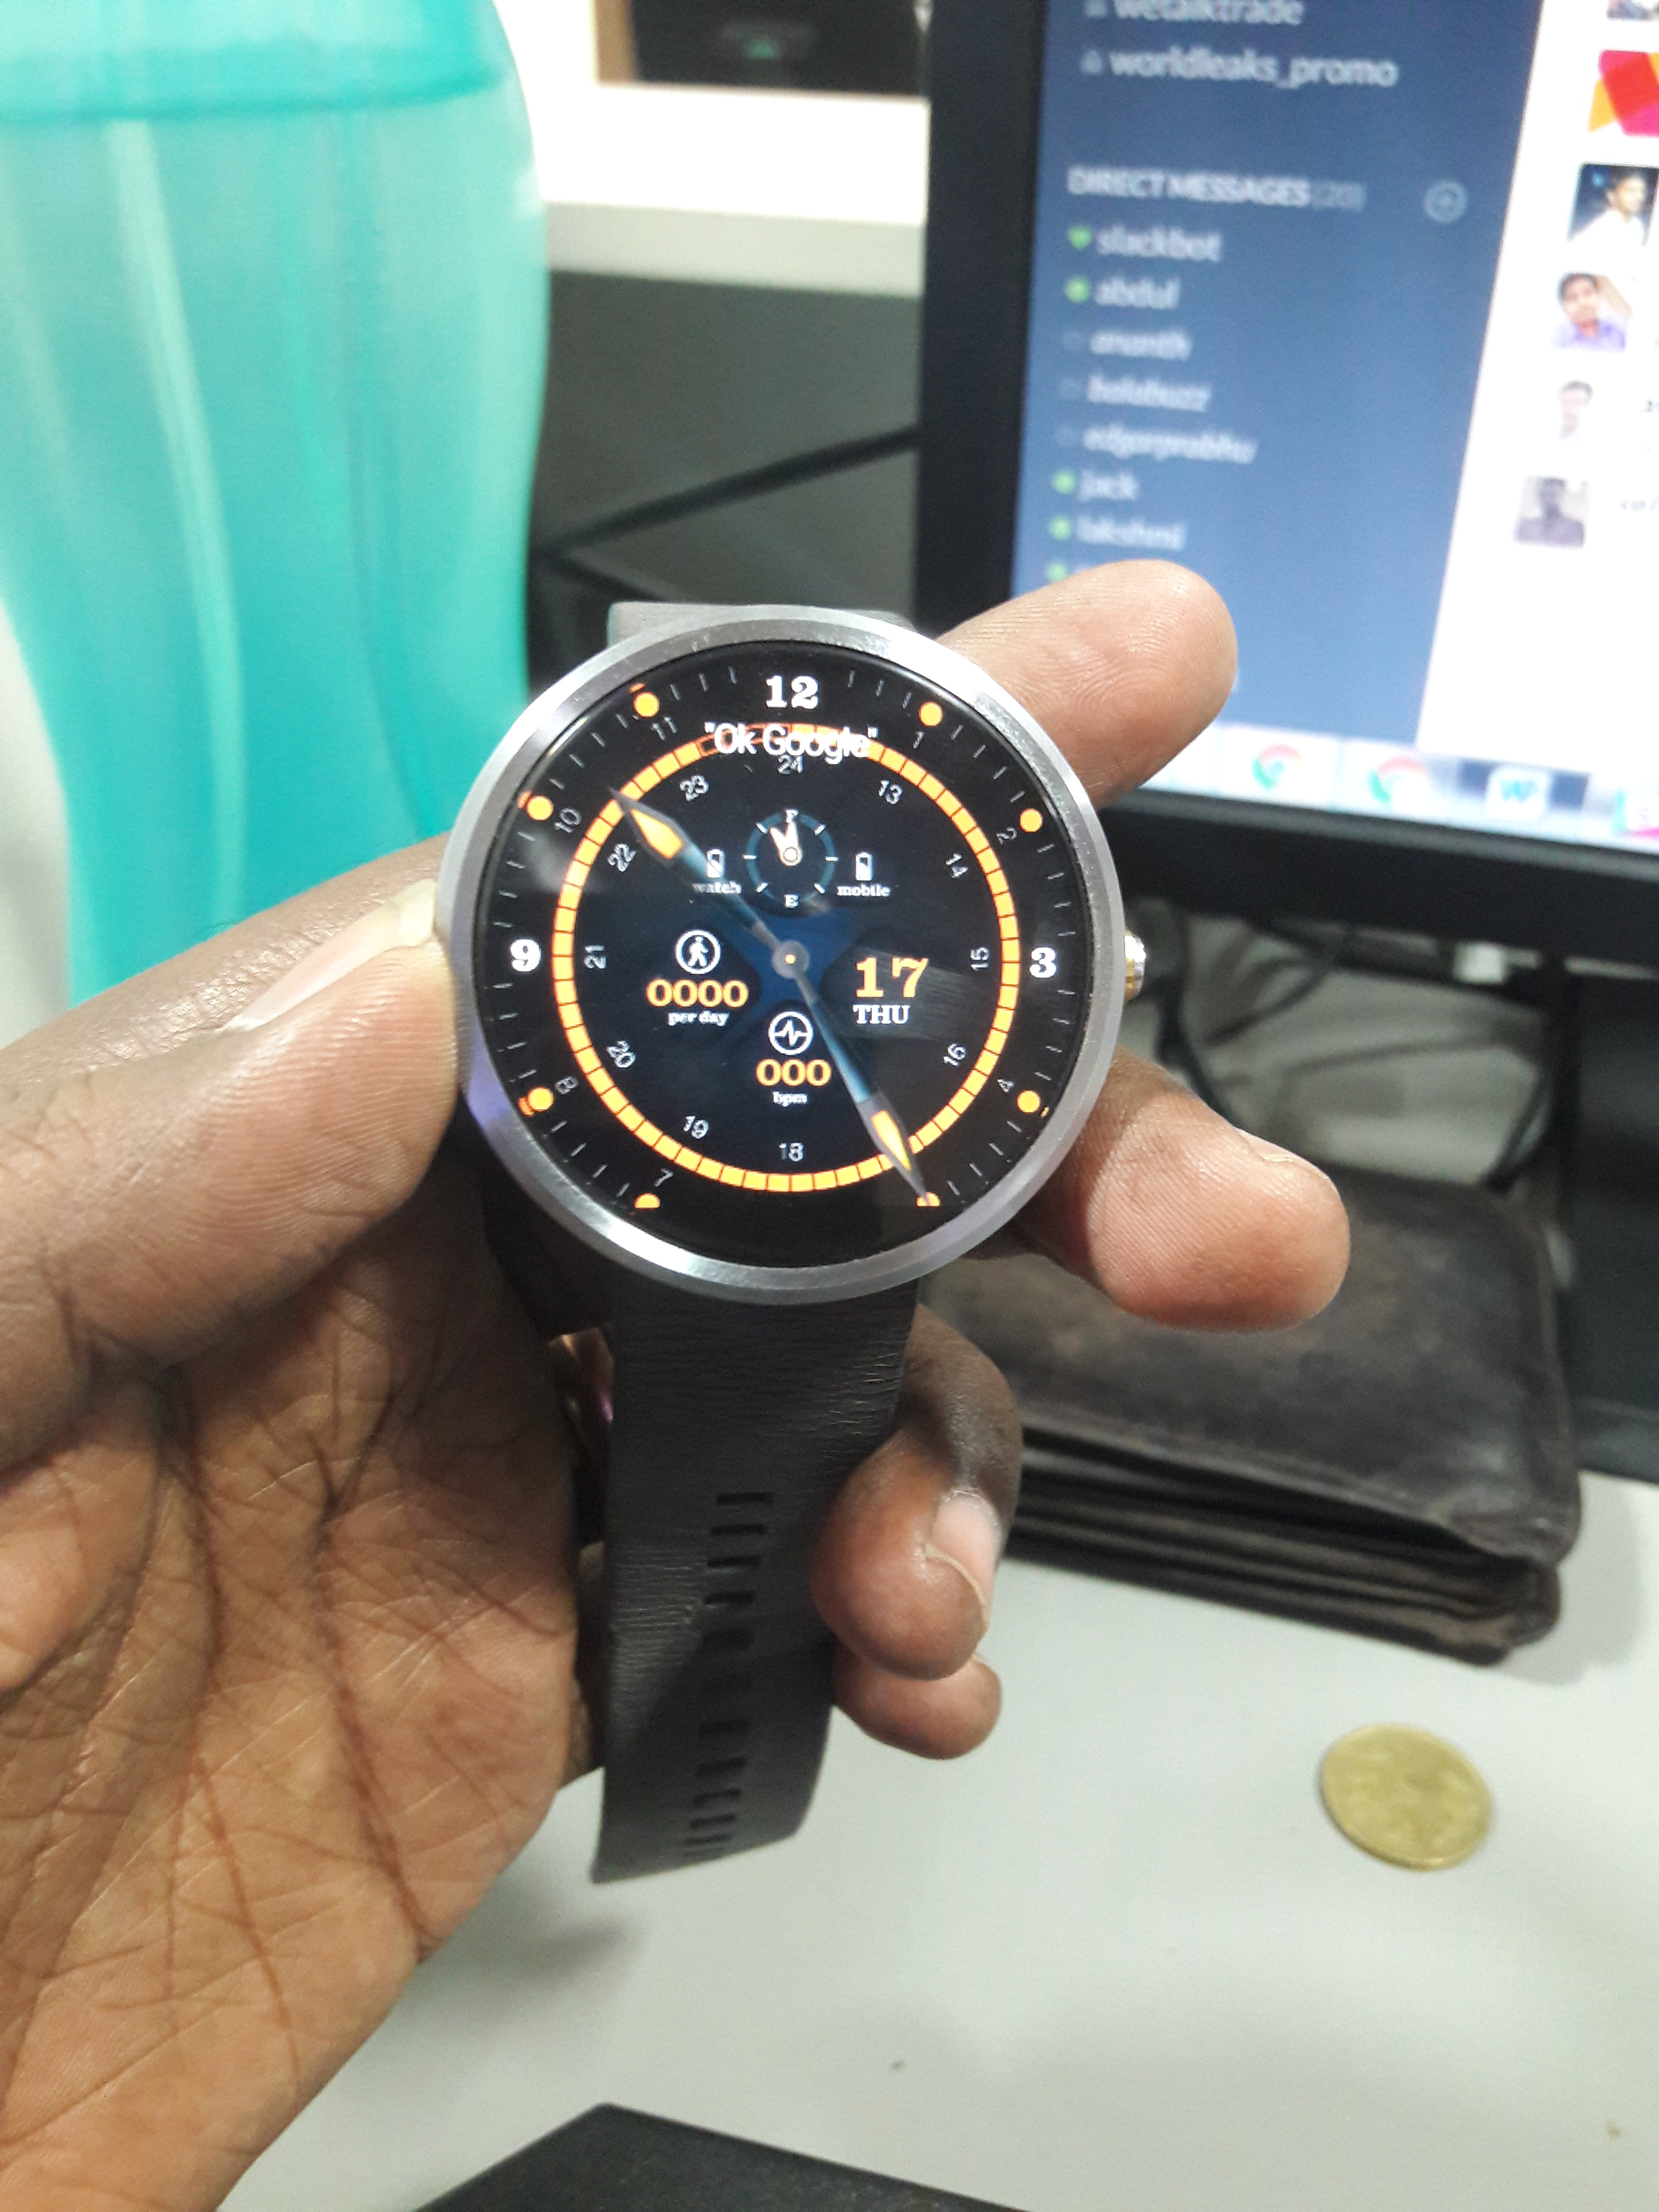 Smarter Watch Faces